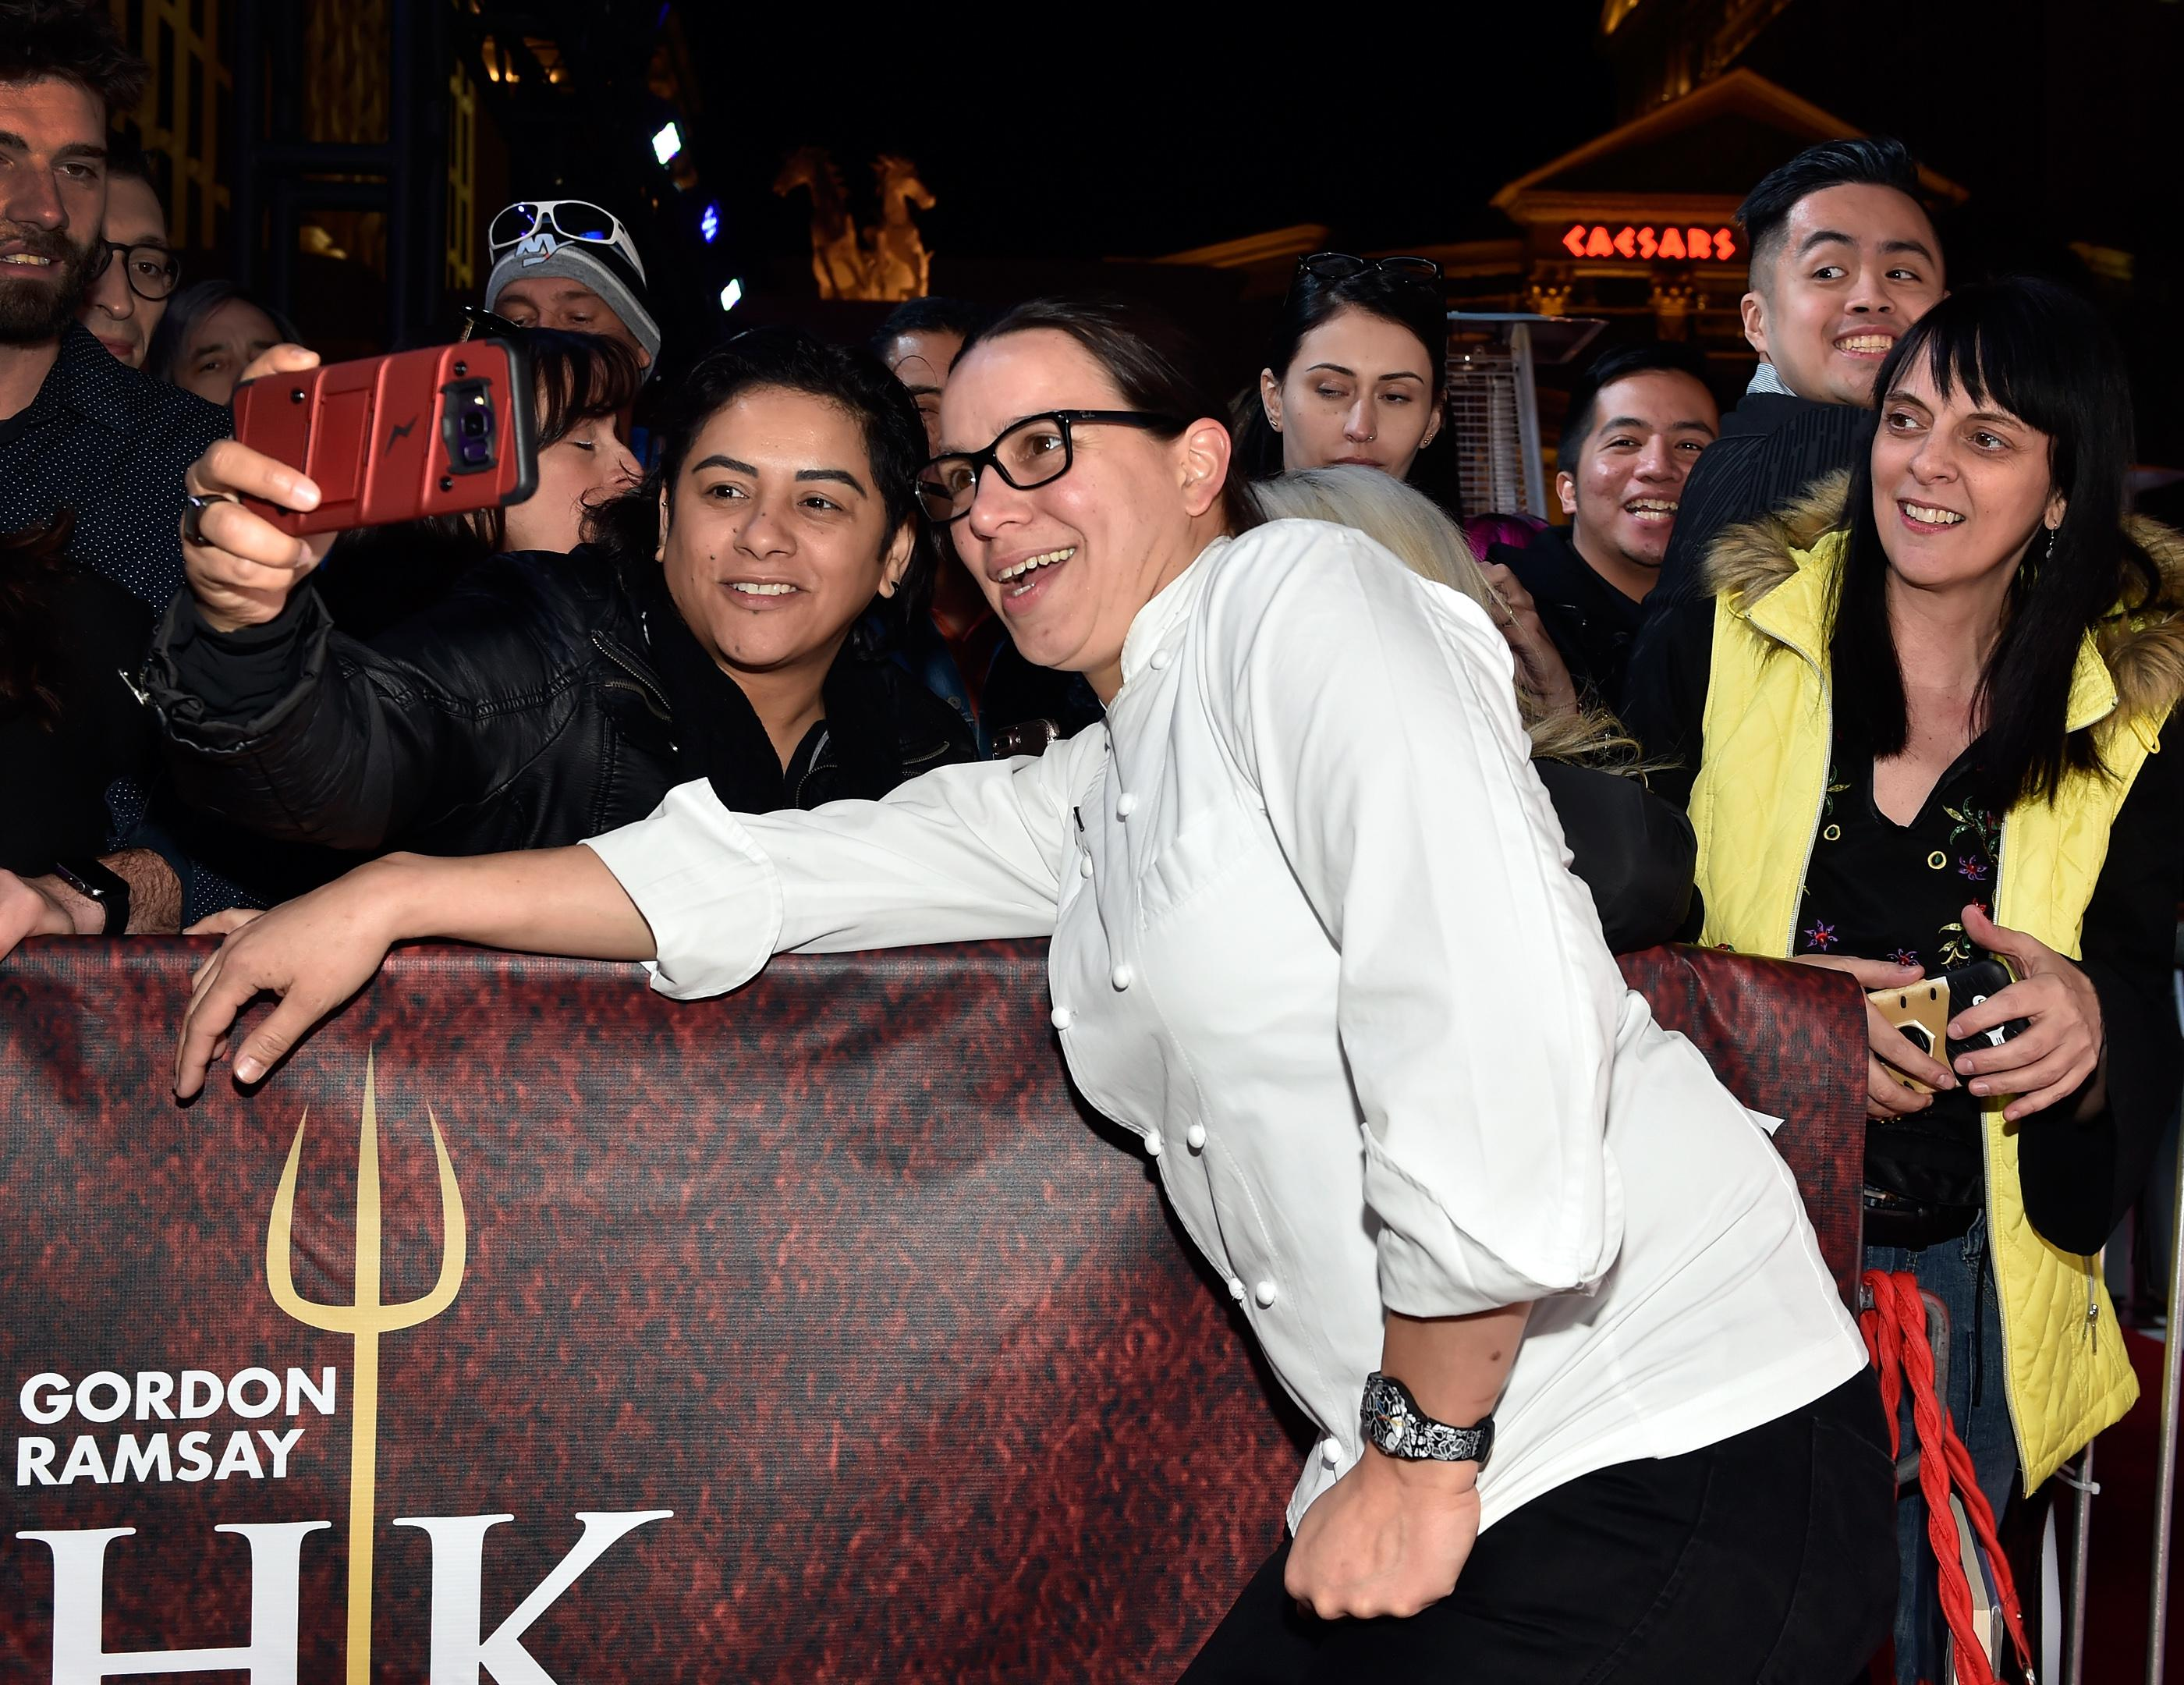 Hell's Kitchen season 10 winner Christina Wilson poses with fans during the grand opening of Gordon Ramsay Hell's Kitchen at Caesars Palace Friday, Jan. 26, 2018, in Las Vegas. CREDIT: David Becker/Las Vegas News Bureau